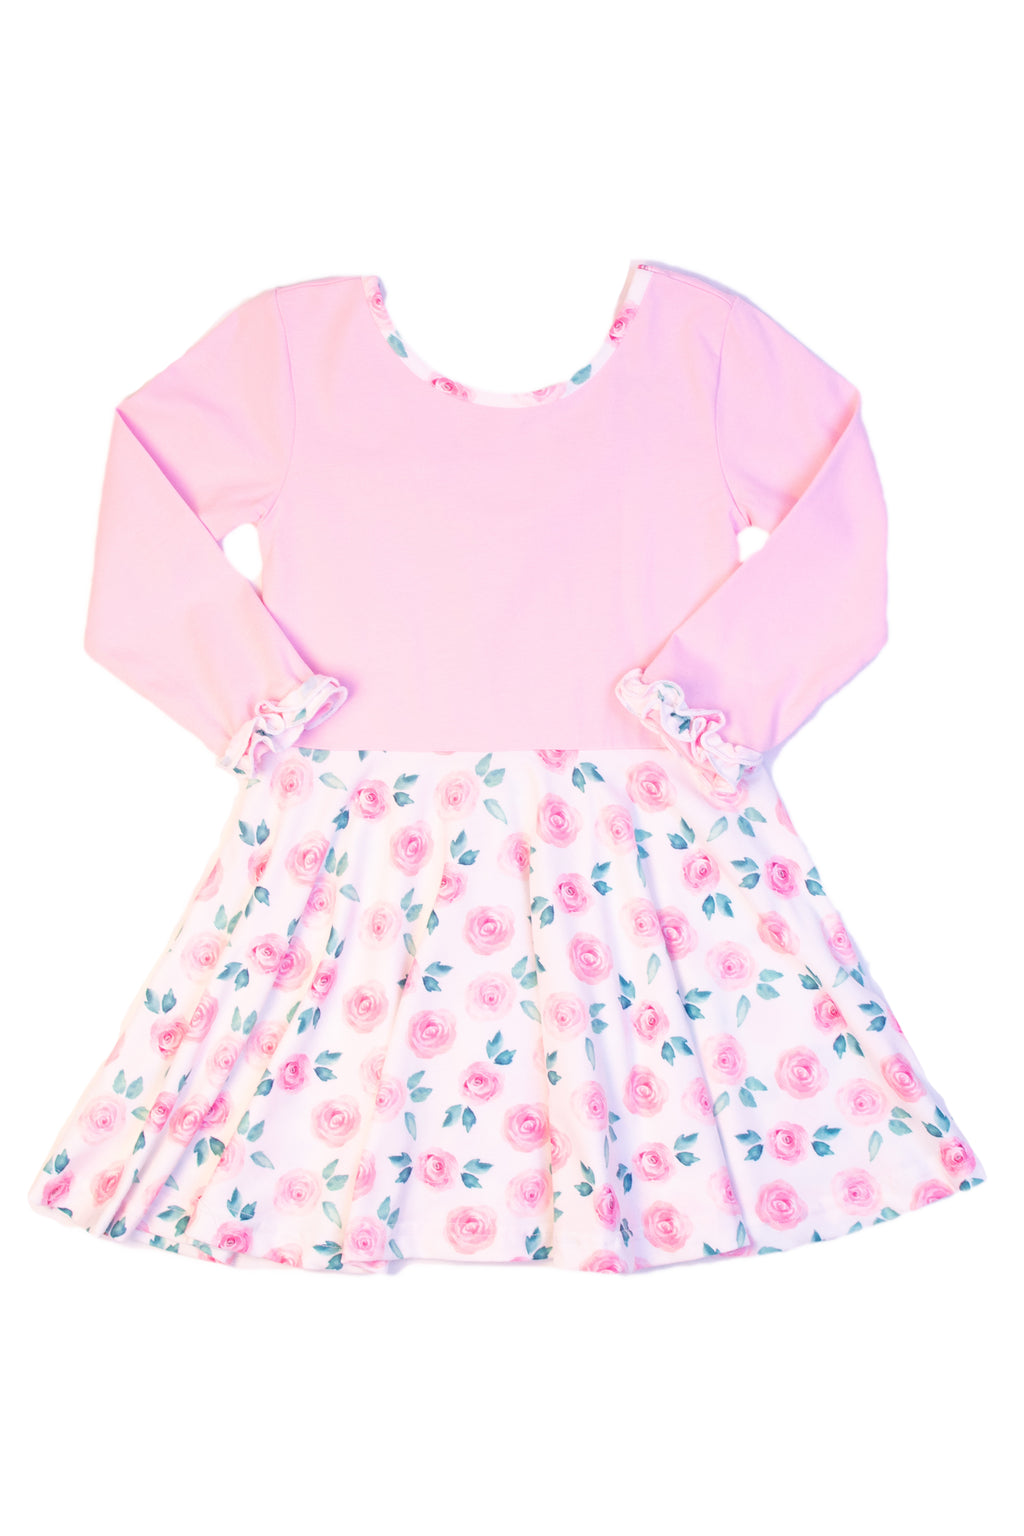 Girls Knit Pink/Floral Twirl Dress